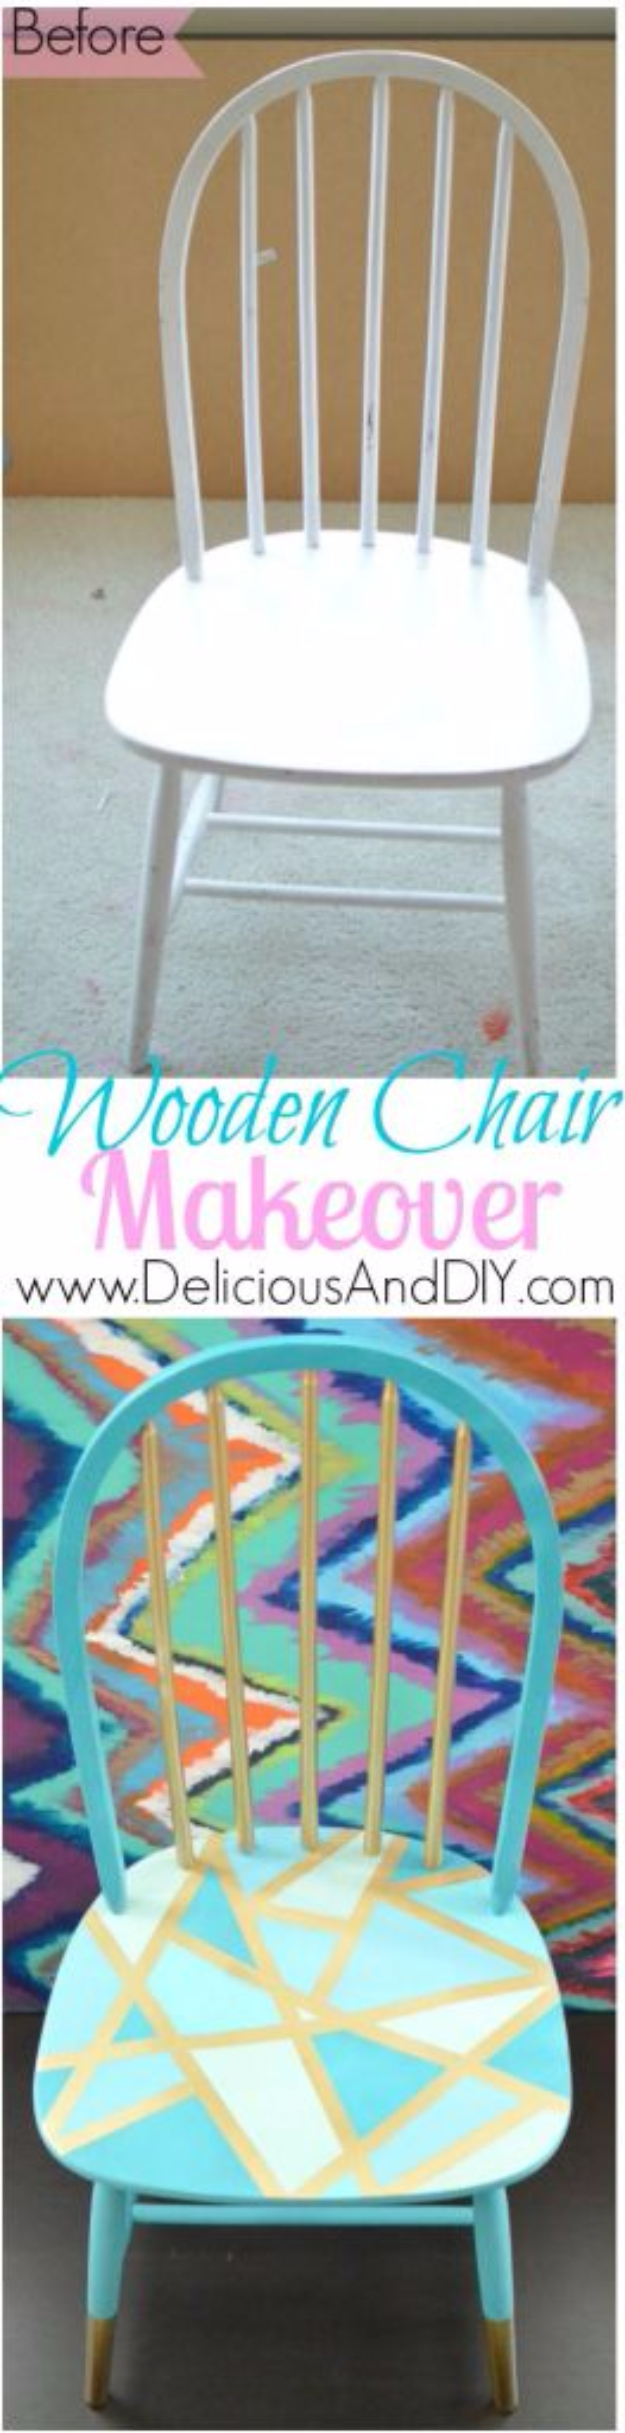 DIY Seating Ideas - Wooden Chair Makeover - Creative Indoor Furniture, Chairs and Easy Seat Projects for Living Room, Bedroom, Dorm and Kids Room. Cheap Projects for those On A Budget. Tutorials for Cushions, No Sew Covers and Benches